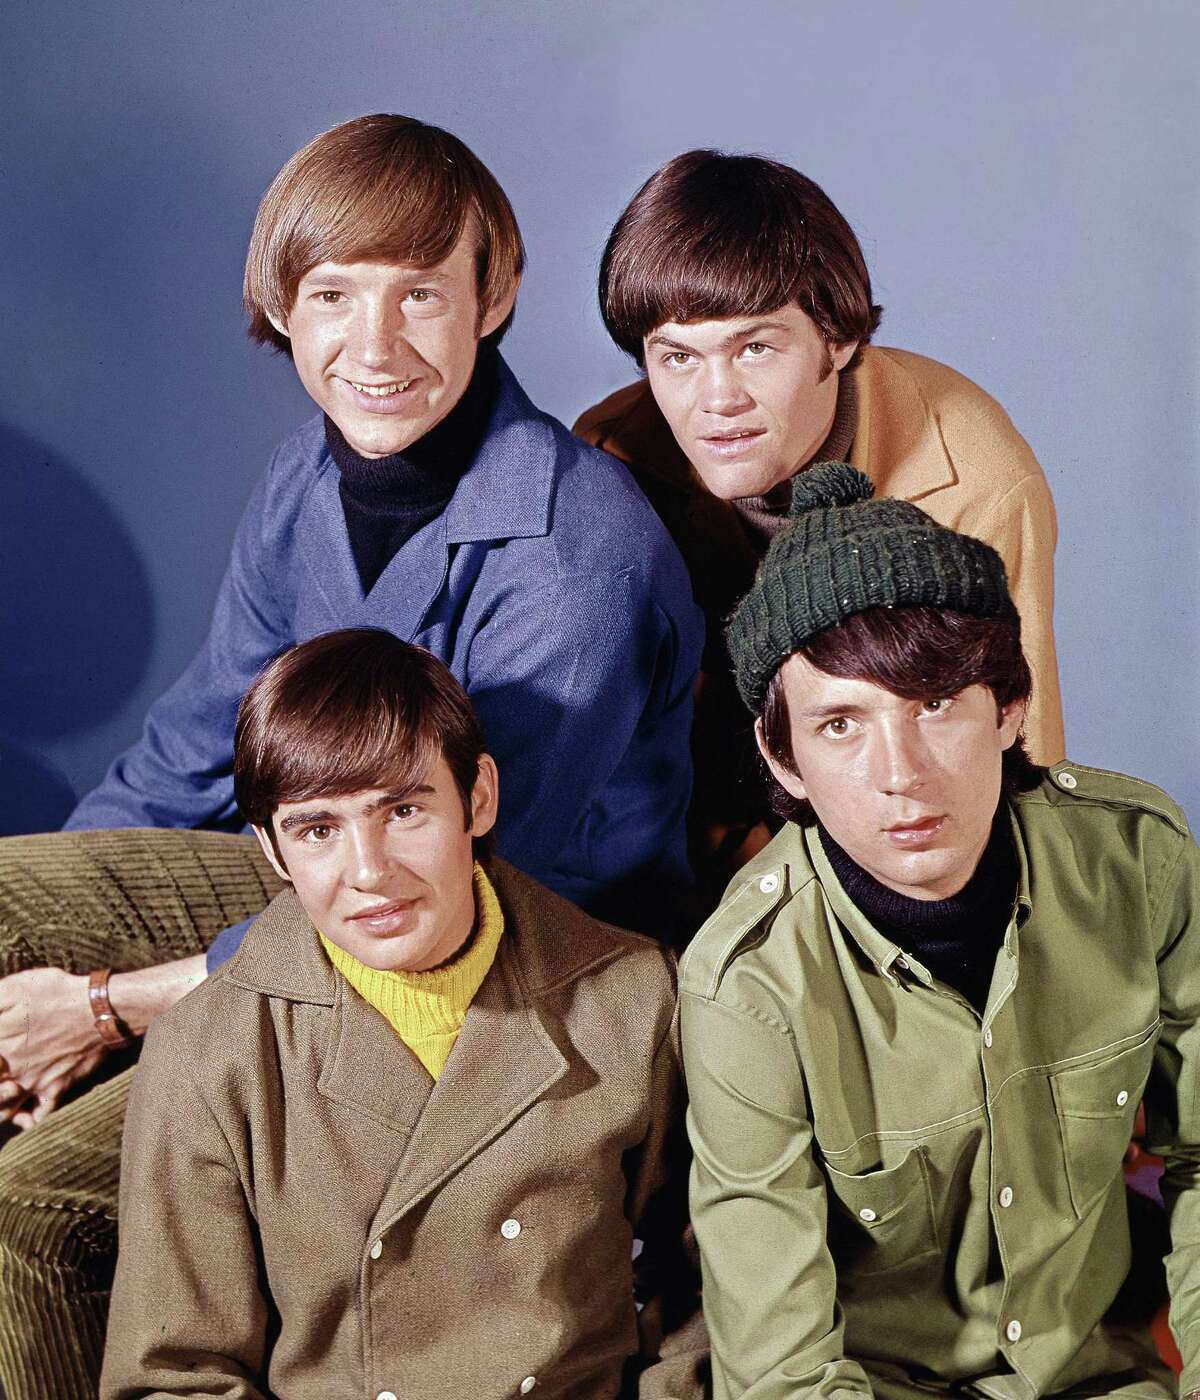 """Pop musical group, """"The Monkees"""" are shown in this Oct. 20, 1966 photo. At top are: Peter Tork, right, and Mickey Dolenz. At bottom are: David Jones, left, and Mike Nesmith. Associated Press"""